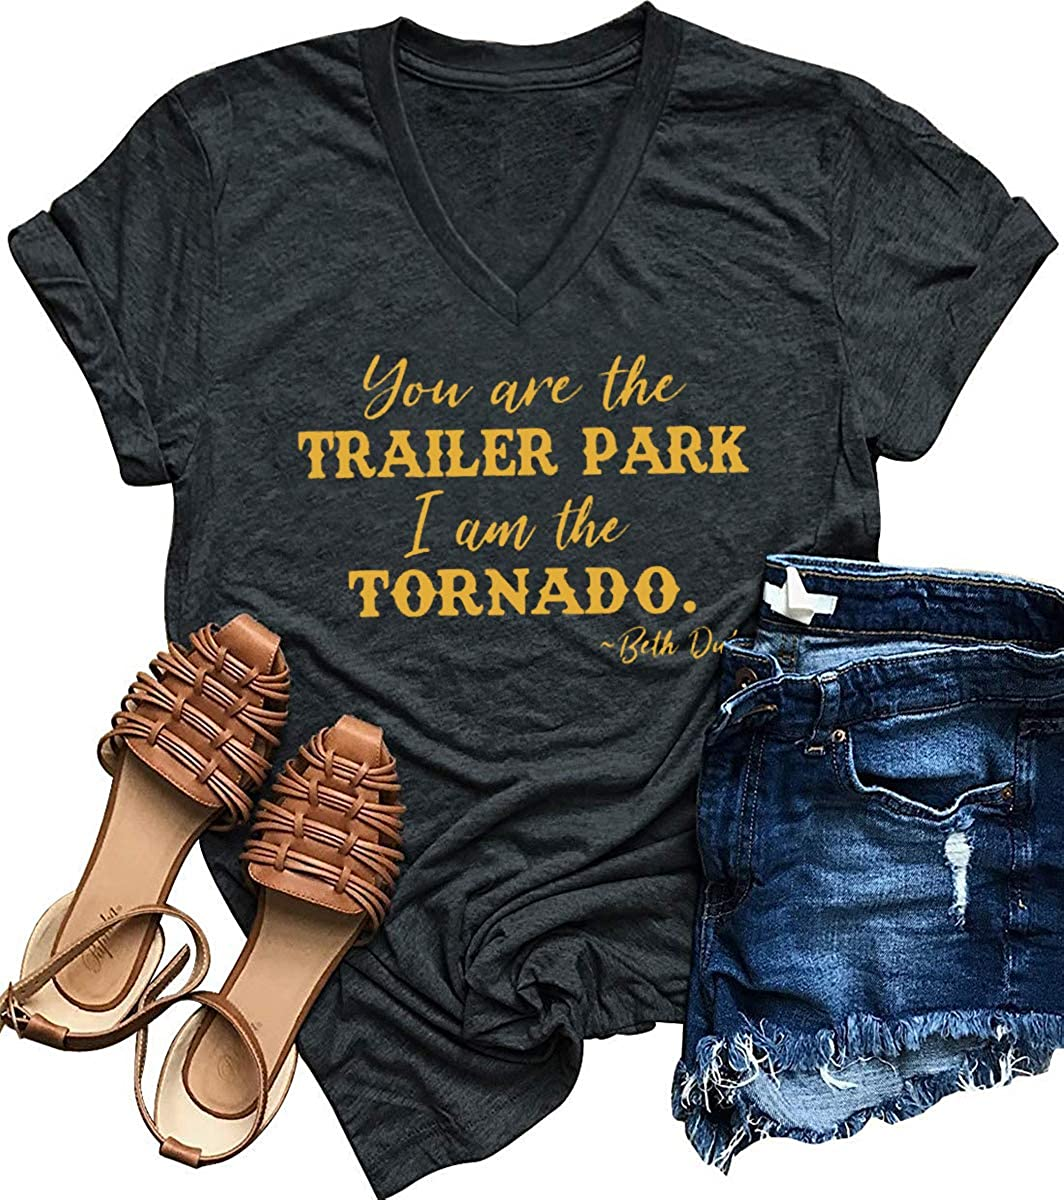 You are The Trailer Park I Am The Tornado Beth Dutton TV Show T Shirts Women's V Neck Vintage Country Graphic Tee Tops